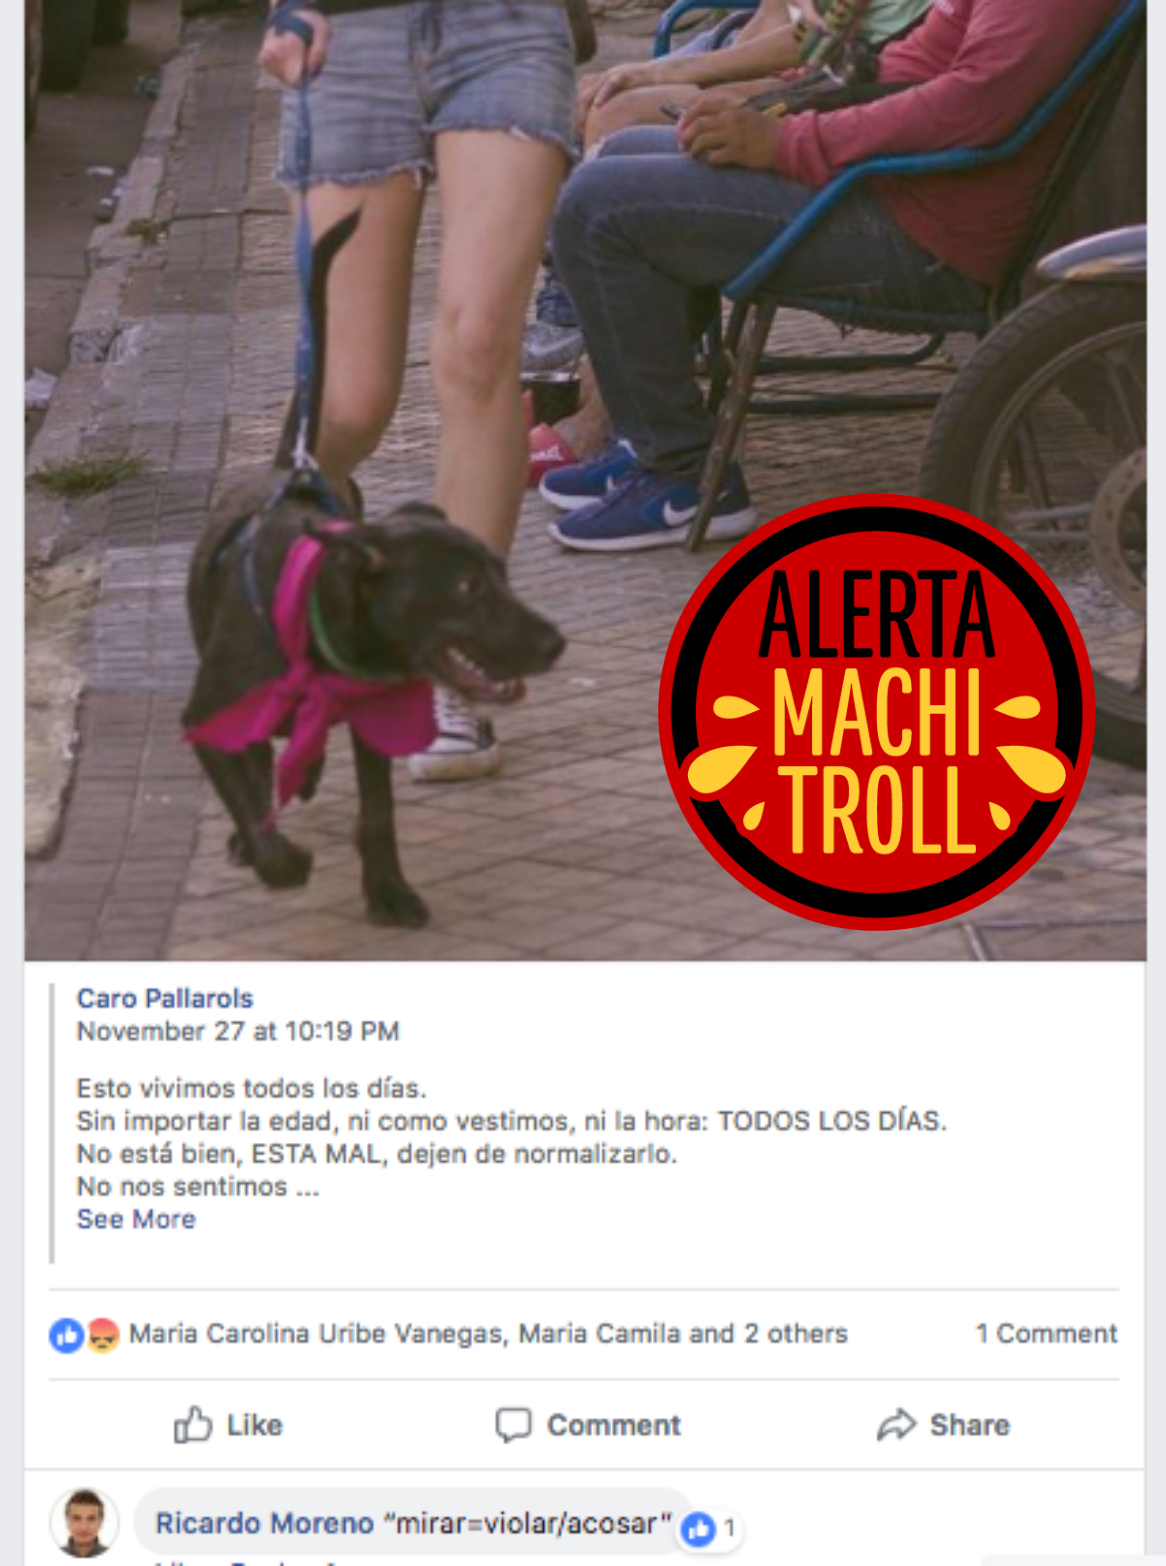 Alerta Machitroll